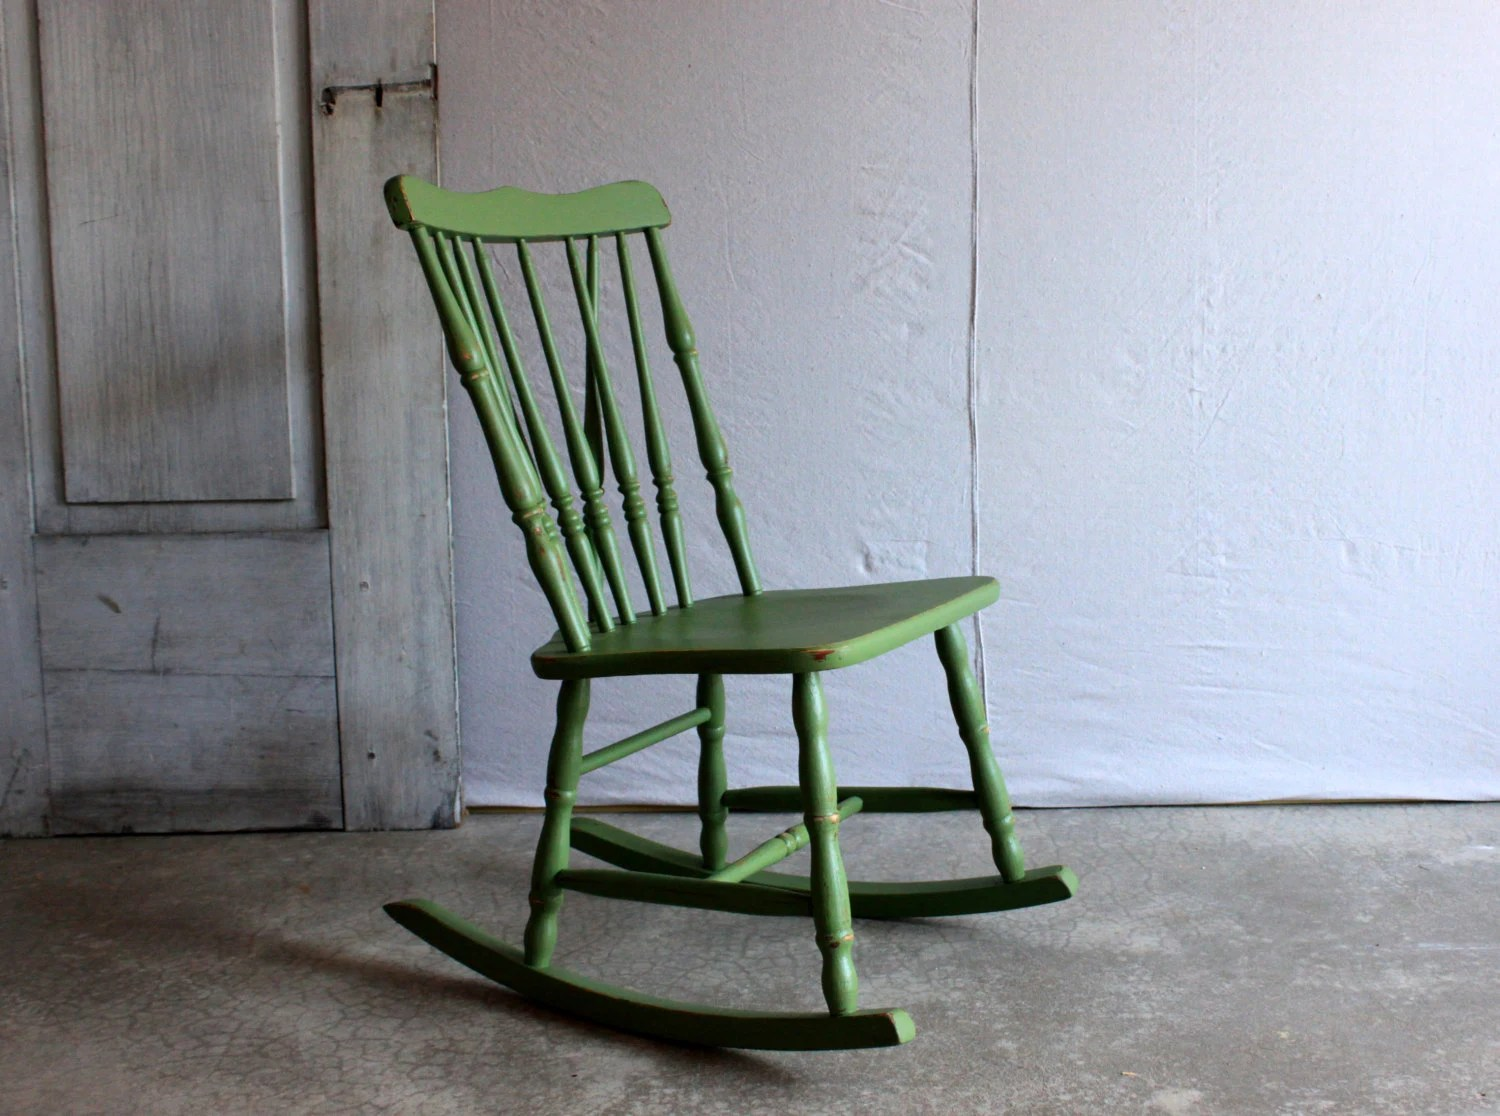 Small Rocking Chair Vintage Childrens Rocking Chair Small Wooden Rocker Painted